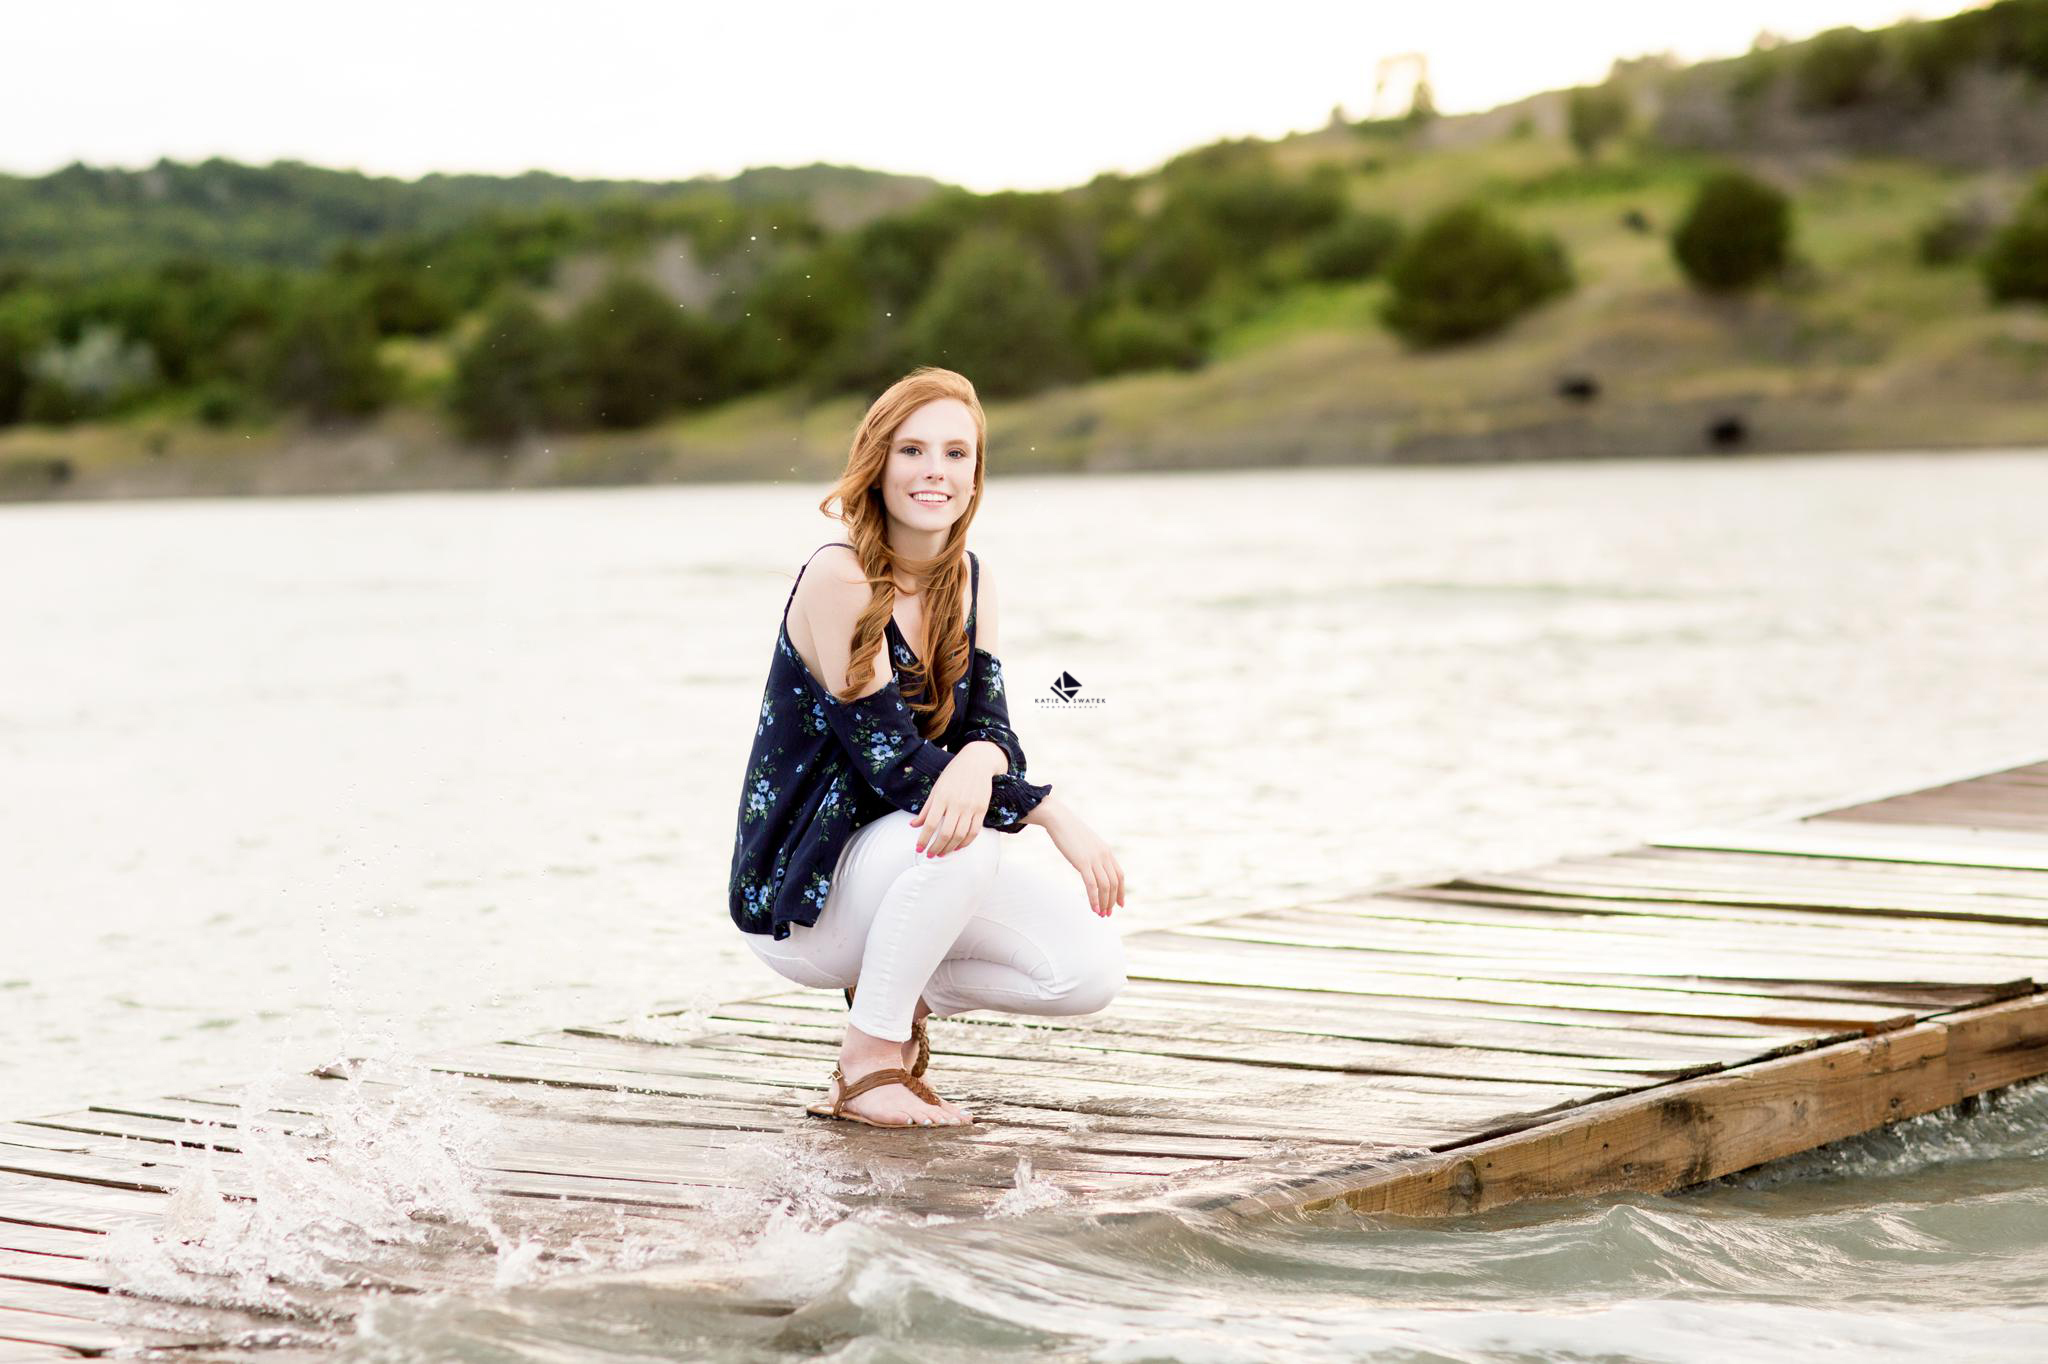 Red headed senior in a navy blue floral top and white pants squatting on a dock surrounded by waves and water with a green hill in the background on Lake Francis Case in South Dakota